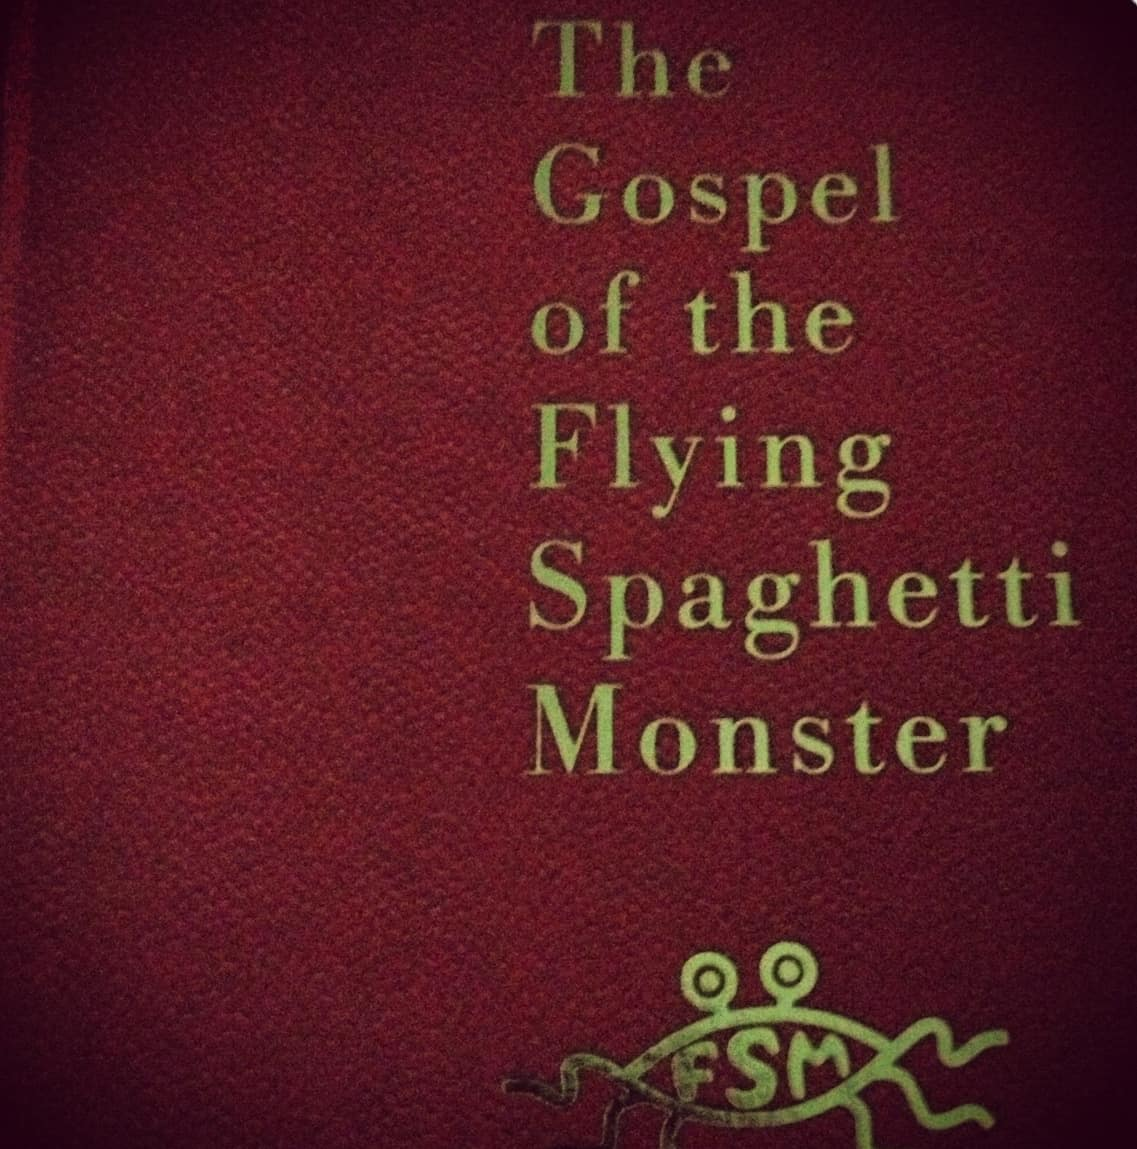 The Gospel of the Flying Spaghetti Monster – funny philosophy book